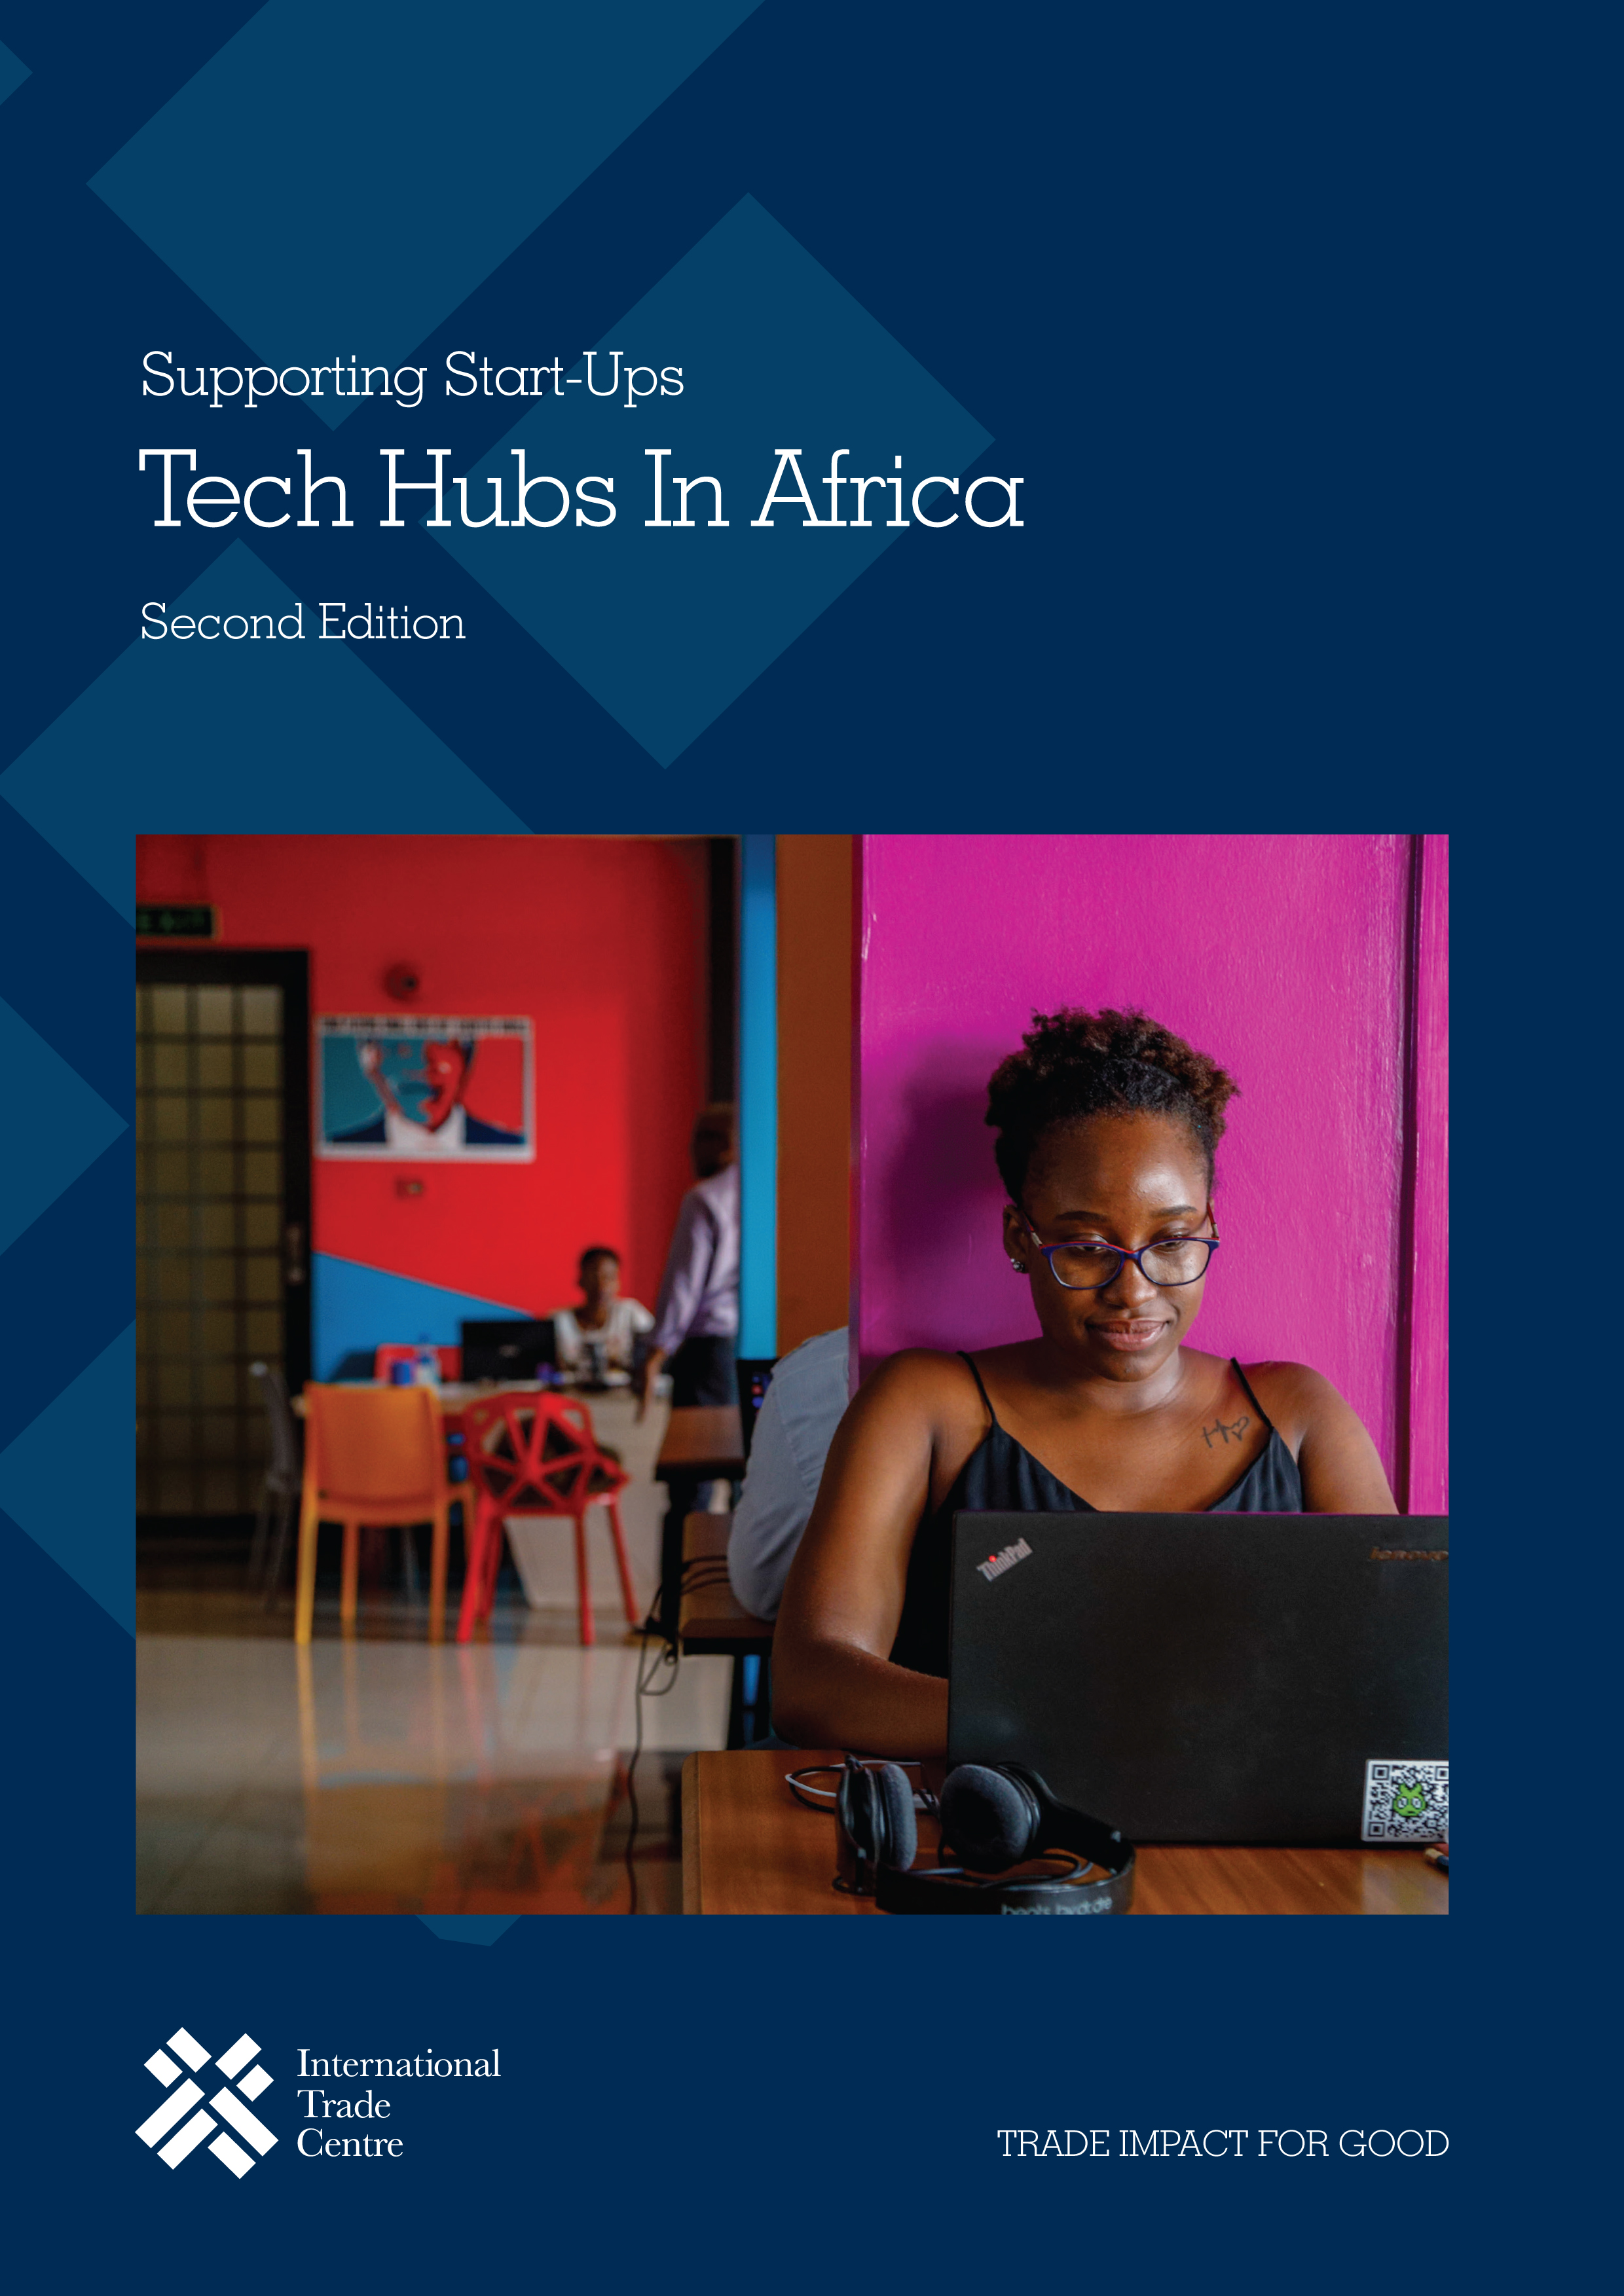 TECH HUBS IN AFRICA 2ND EDITION